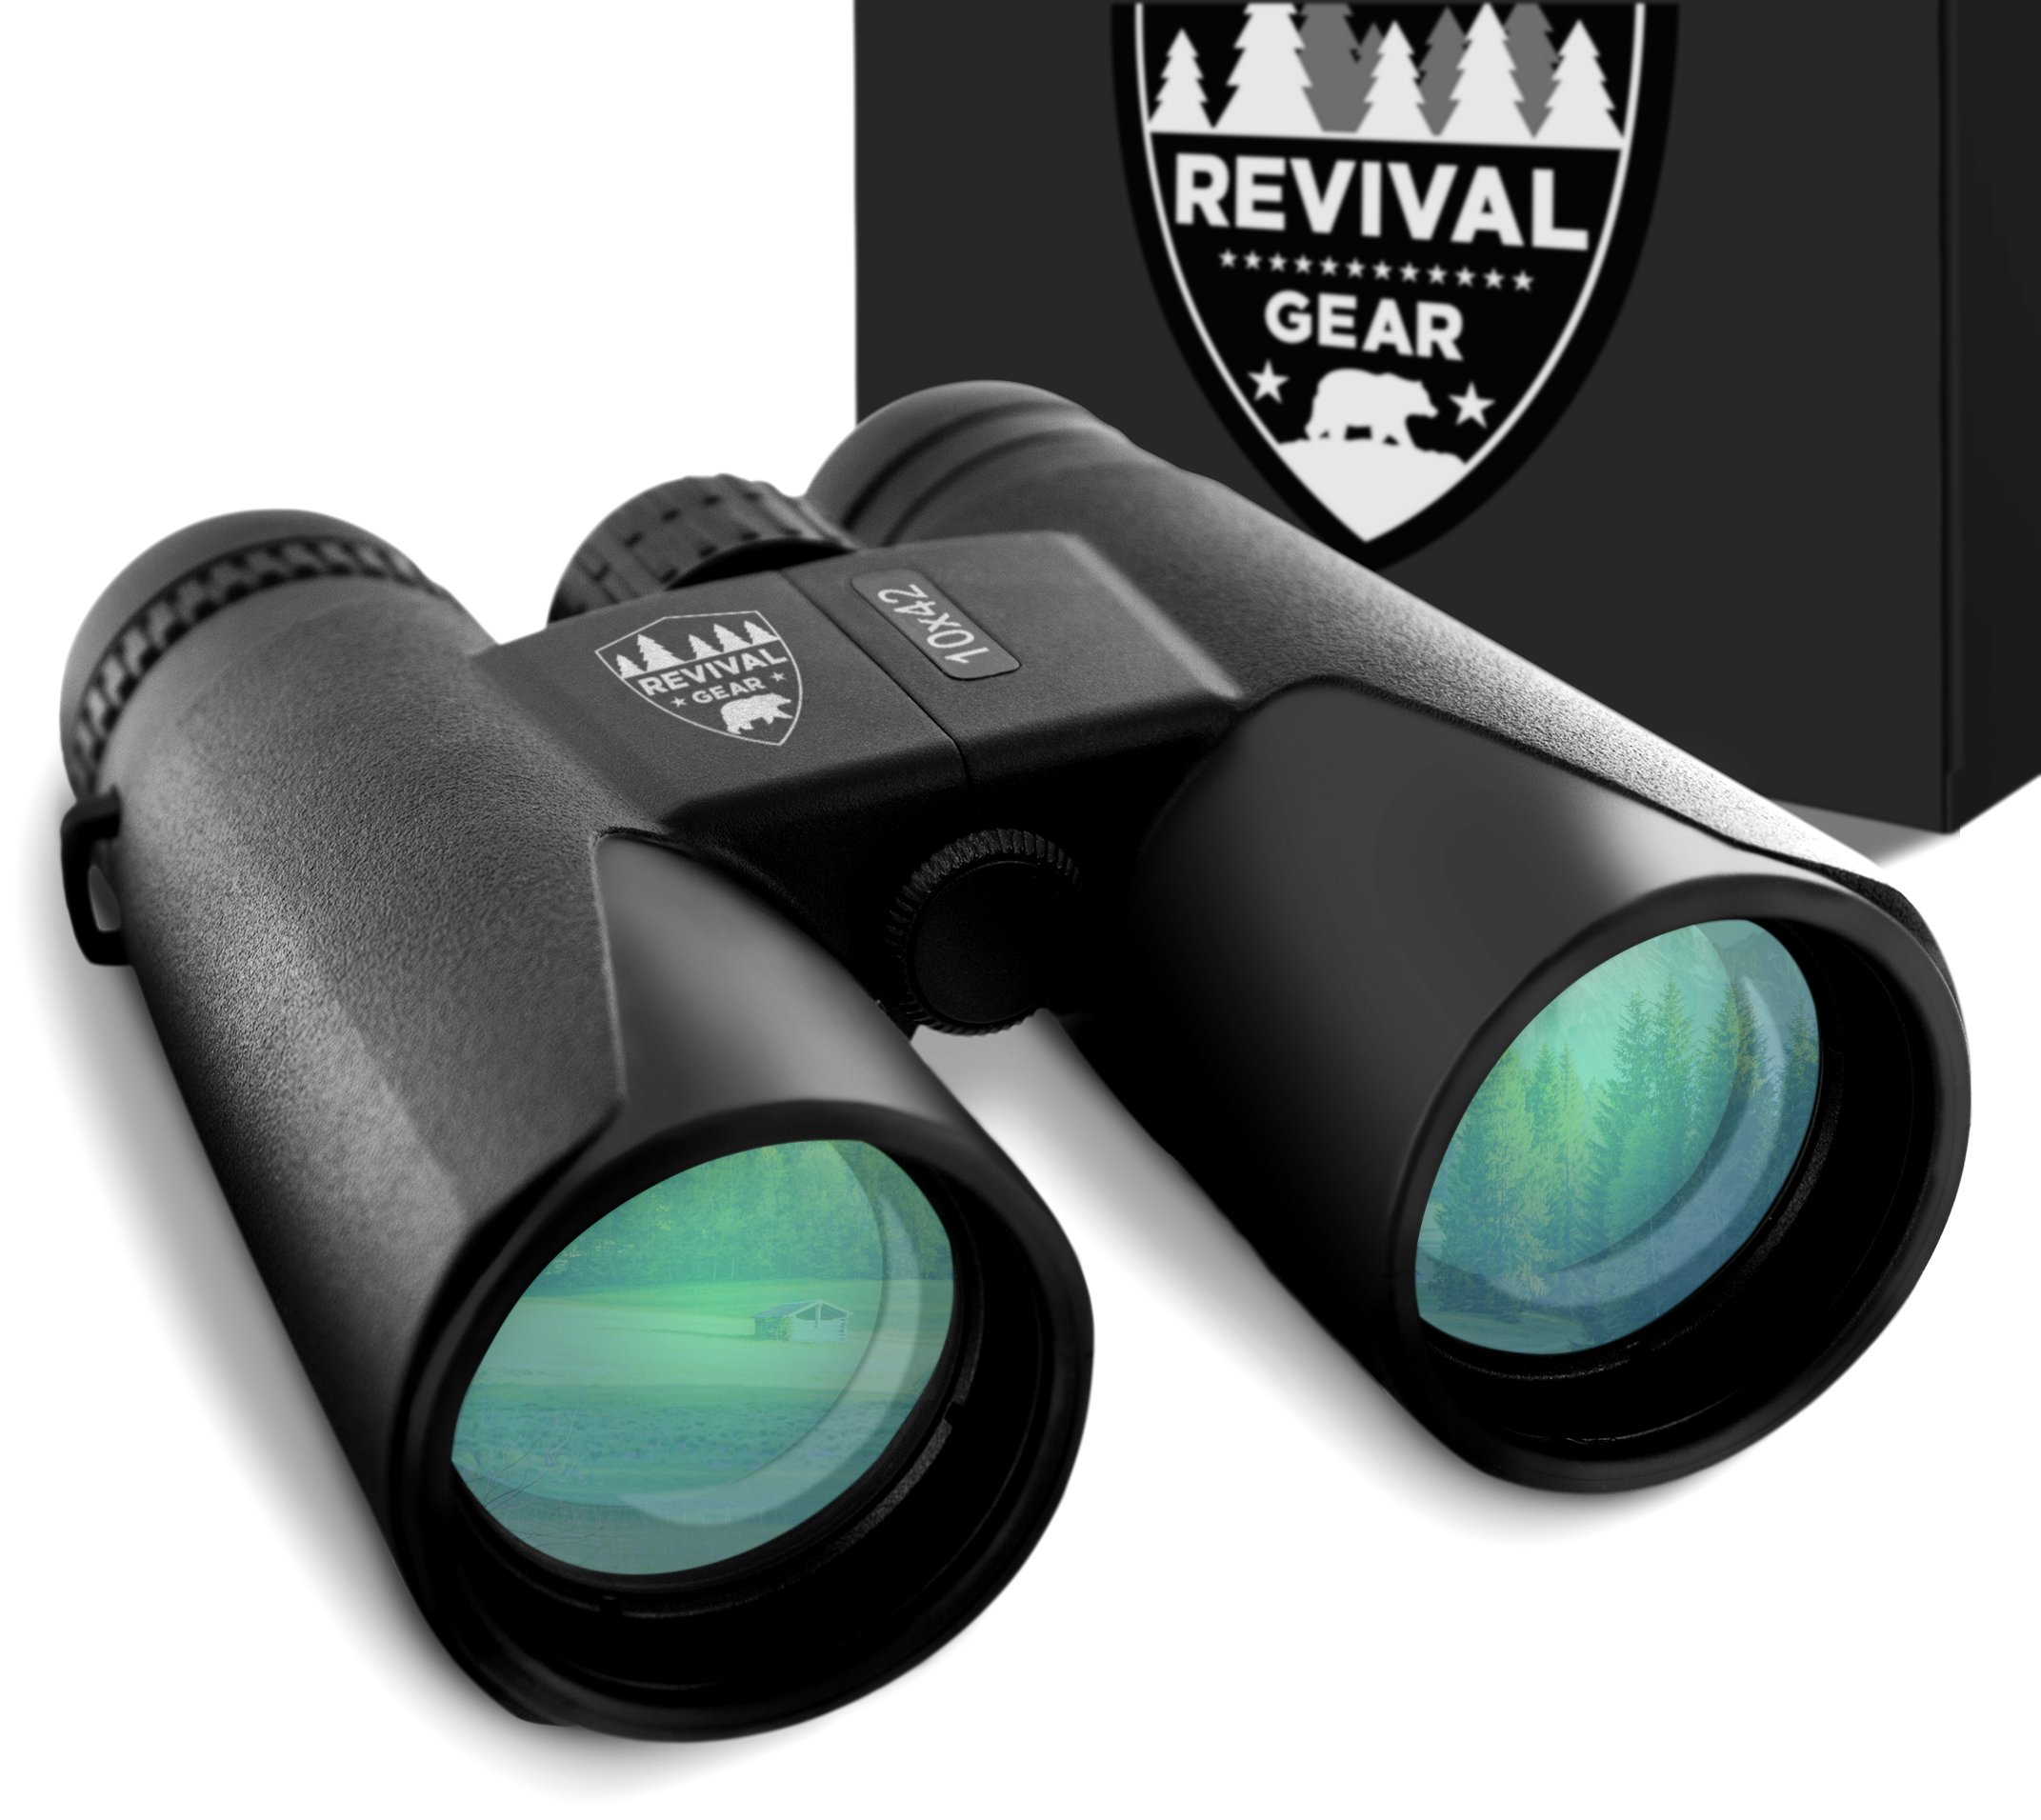 Binoculars for Adults: Best Small Compact Powerful 10X42 Vision Prism Binocular Tactical Hunting Gear. Bird Watching Field Glasses Gift Ideas Men Boys Dad Gifts Him Kids Women. Harness Strap & Case by Revival Gear